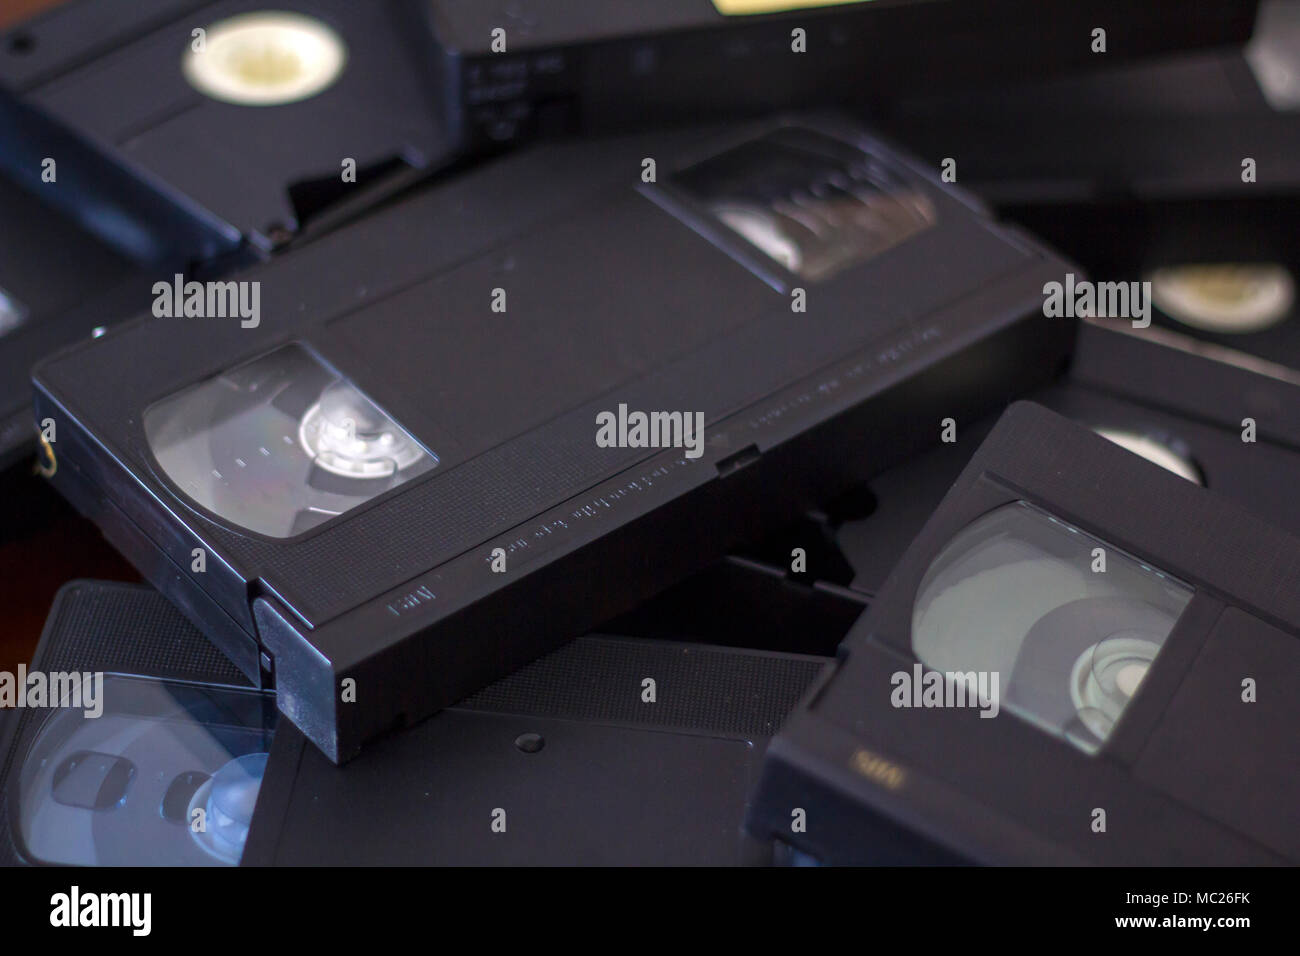 Stack of vhs cassette tapes - Stock Image